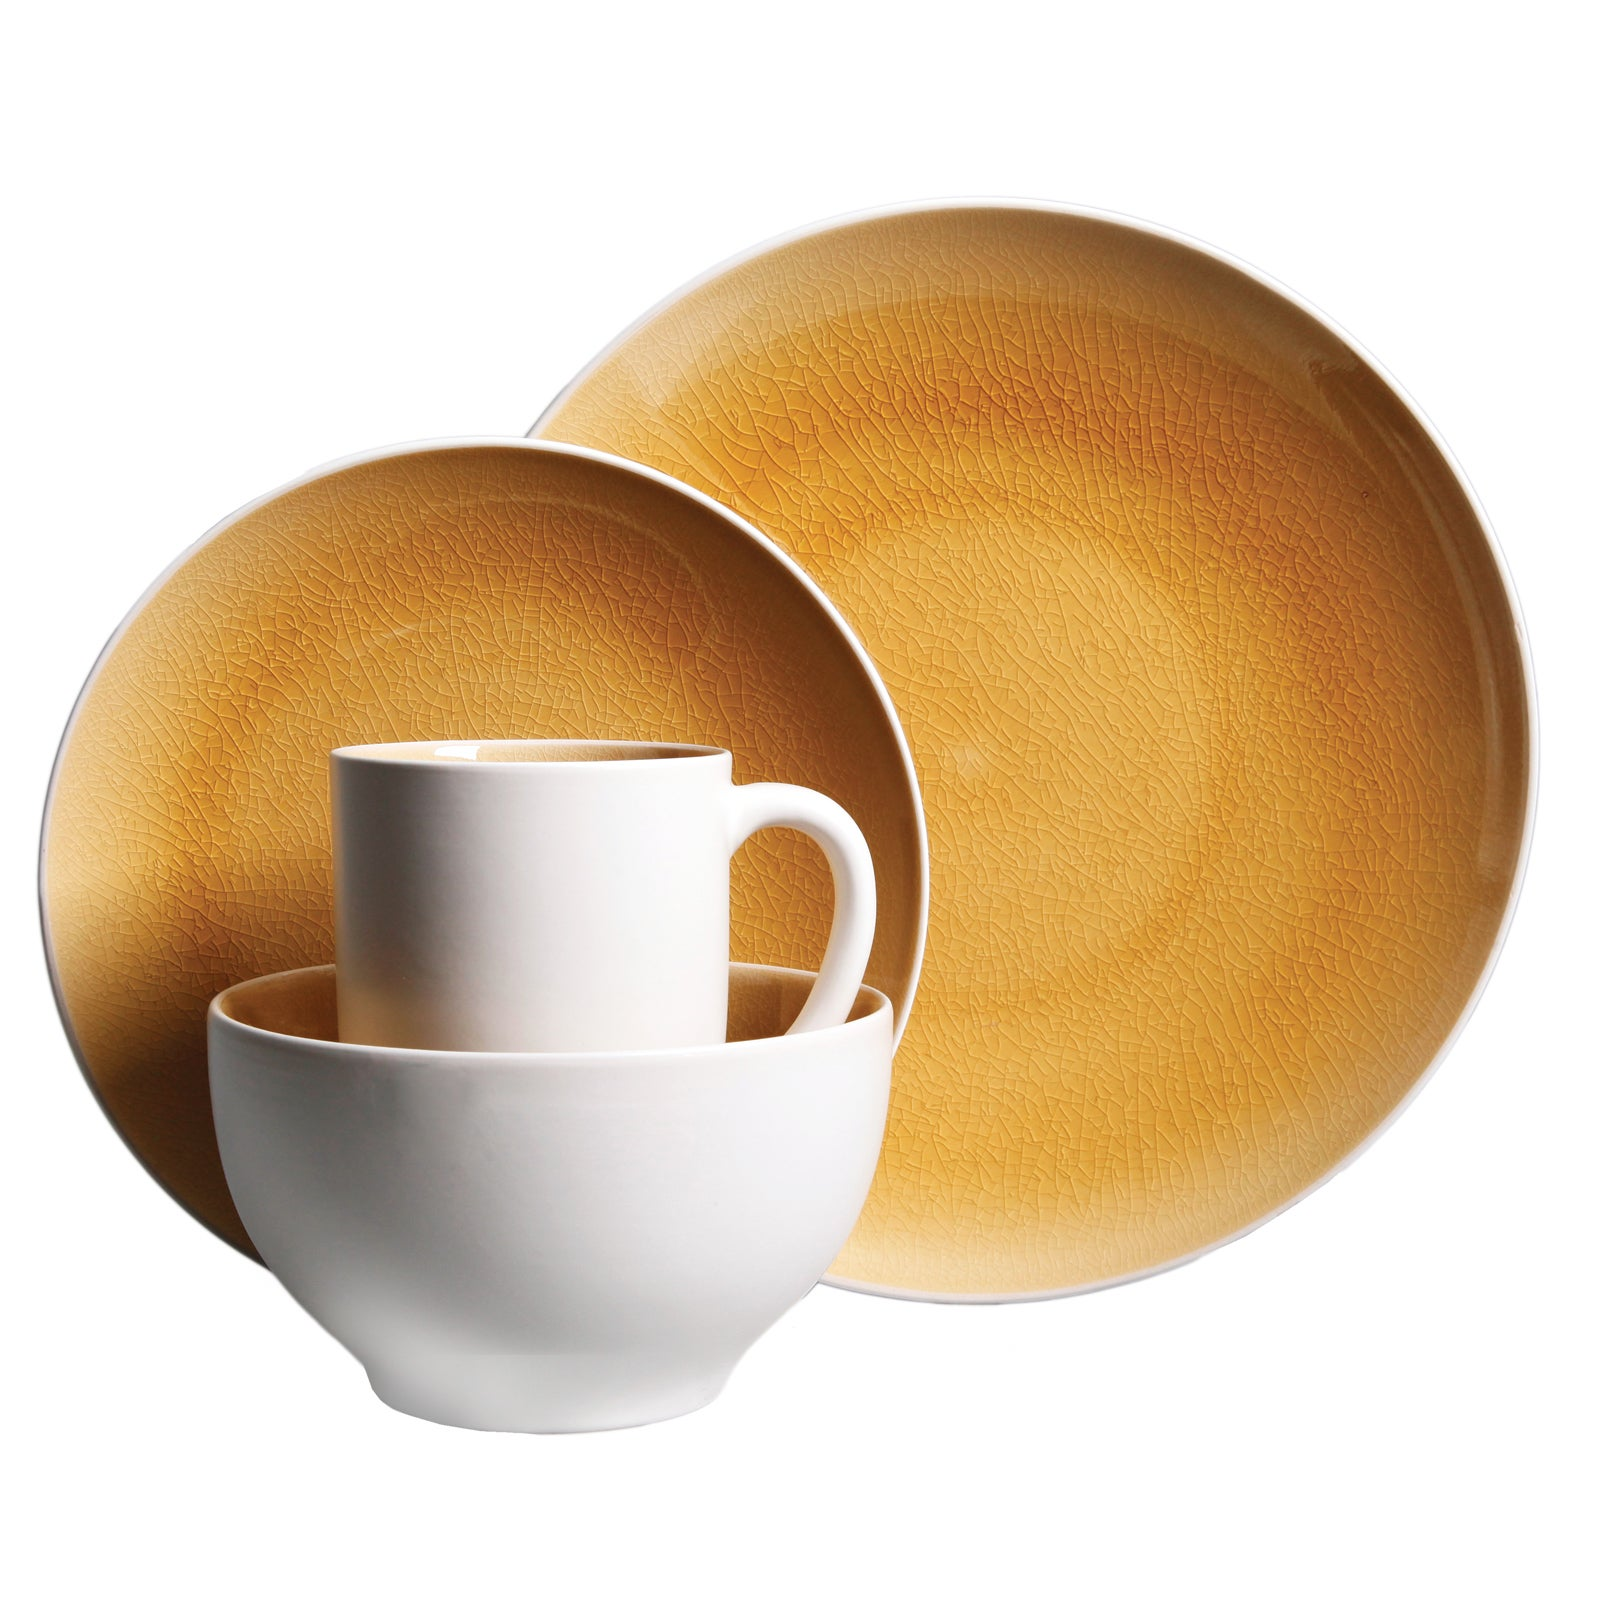 gibson serenity amber yellow 16-piece dinnerware set (service for